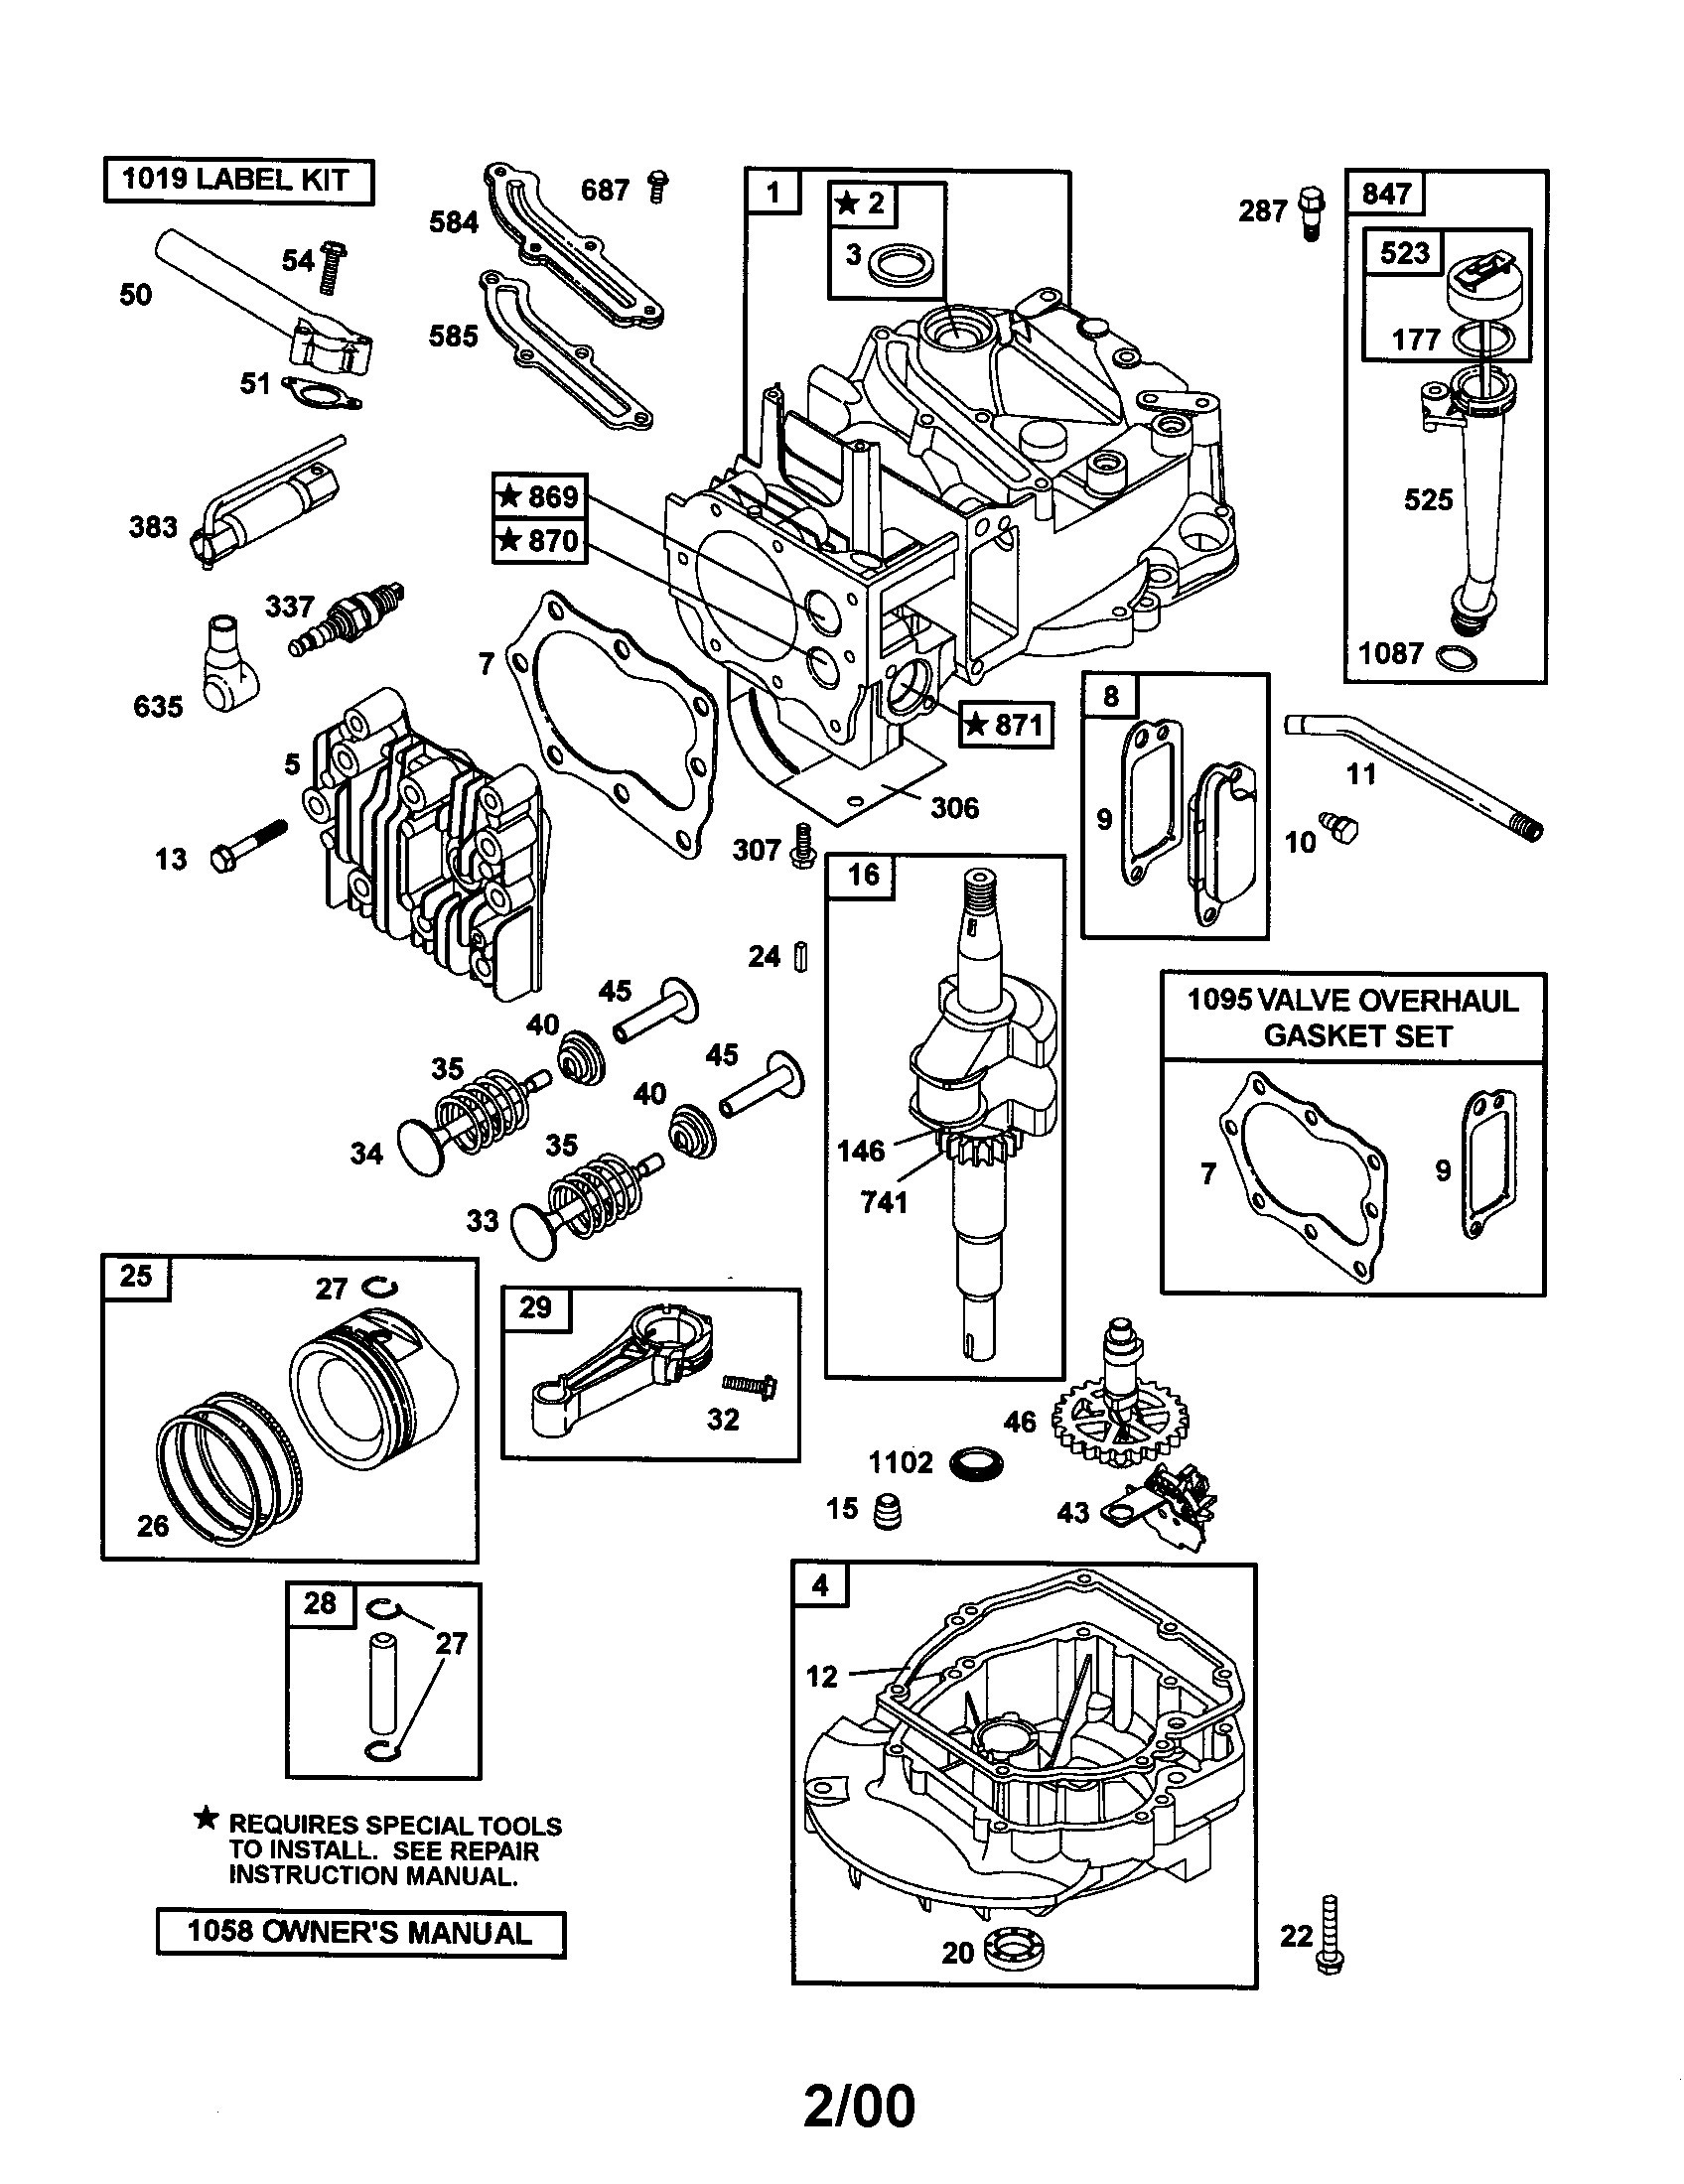 hight resolution of 2004 volvo s40 fuse diagram wiring library 2003 volvo s40 exhaust diagram diy enthusiasts wiring diagrams